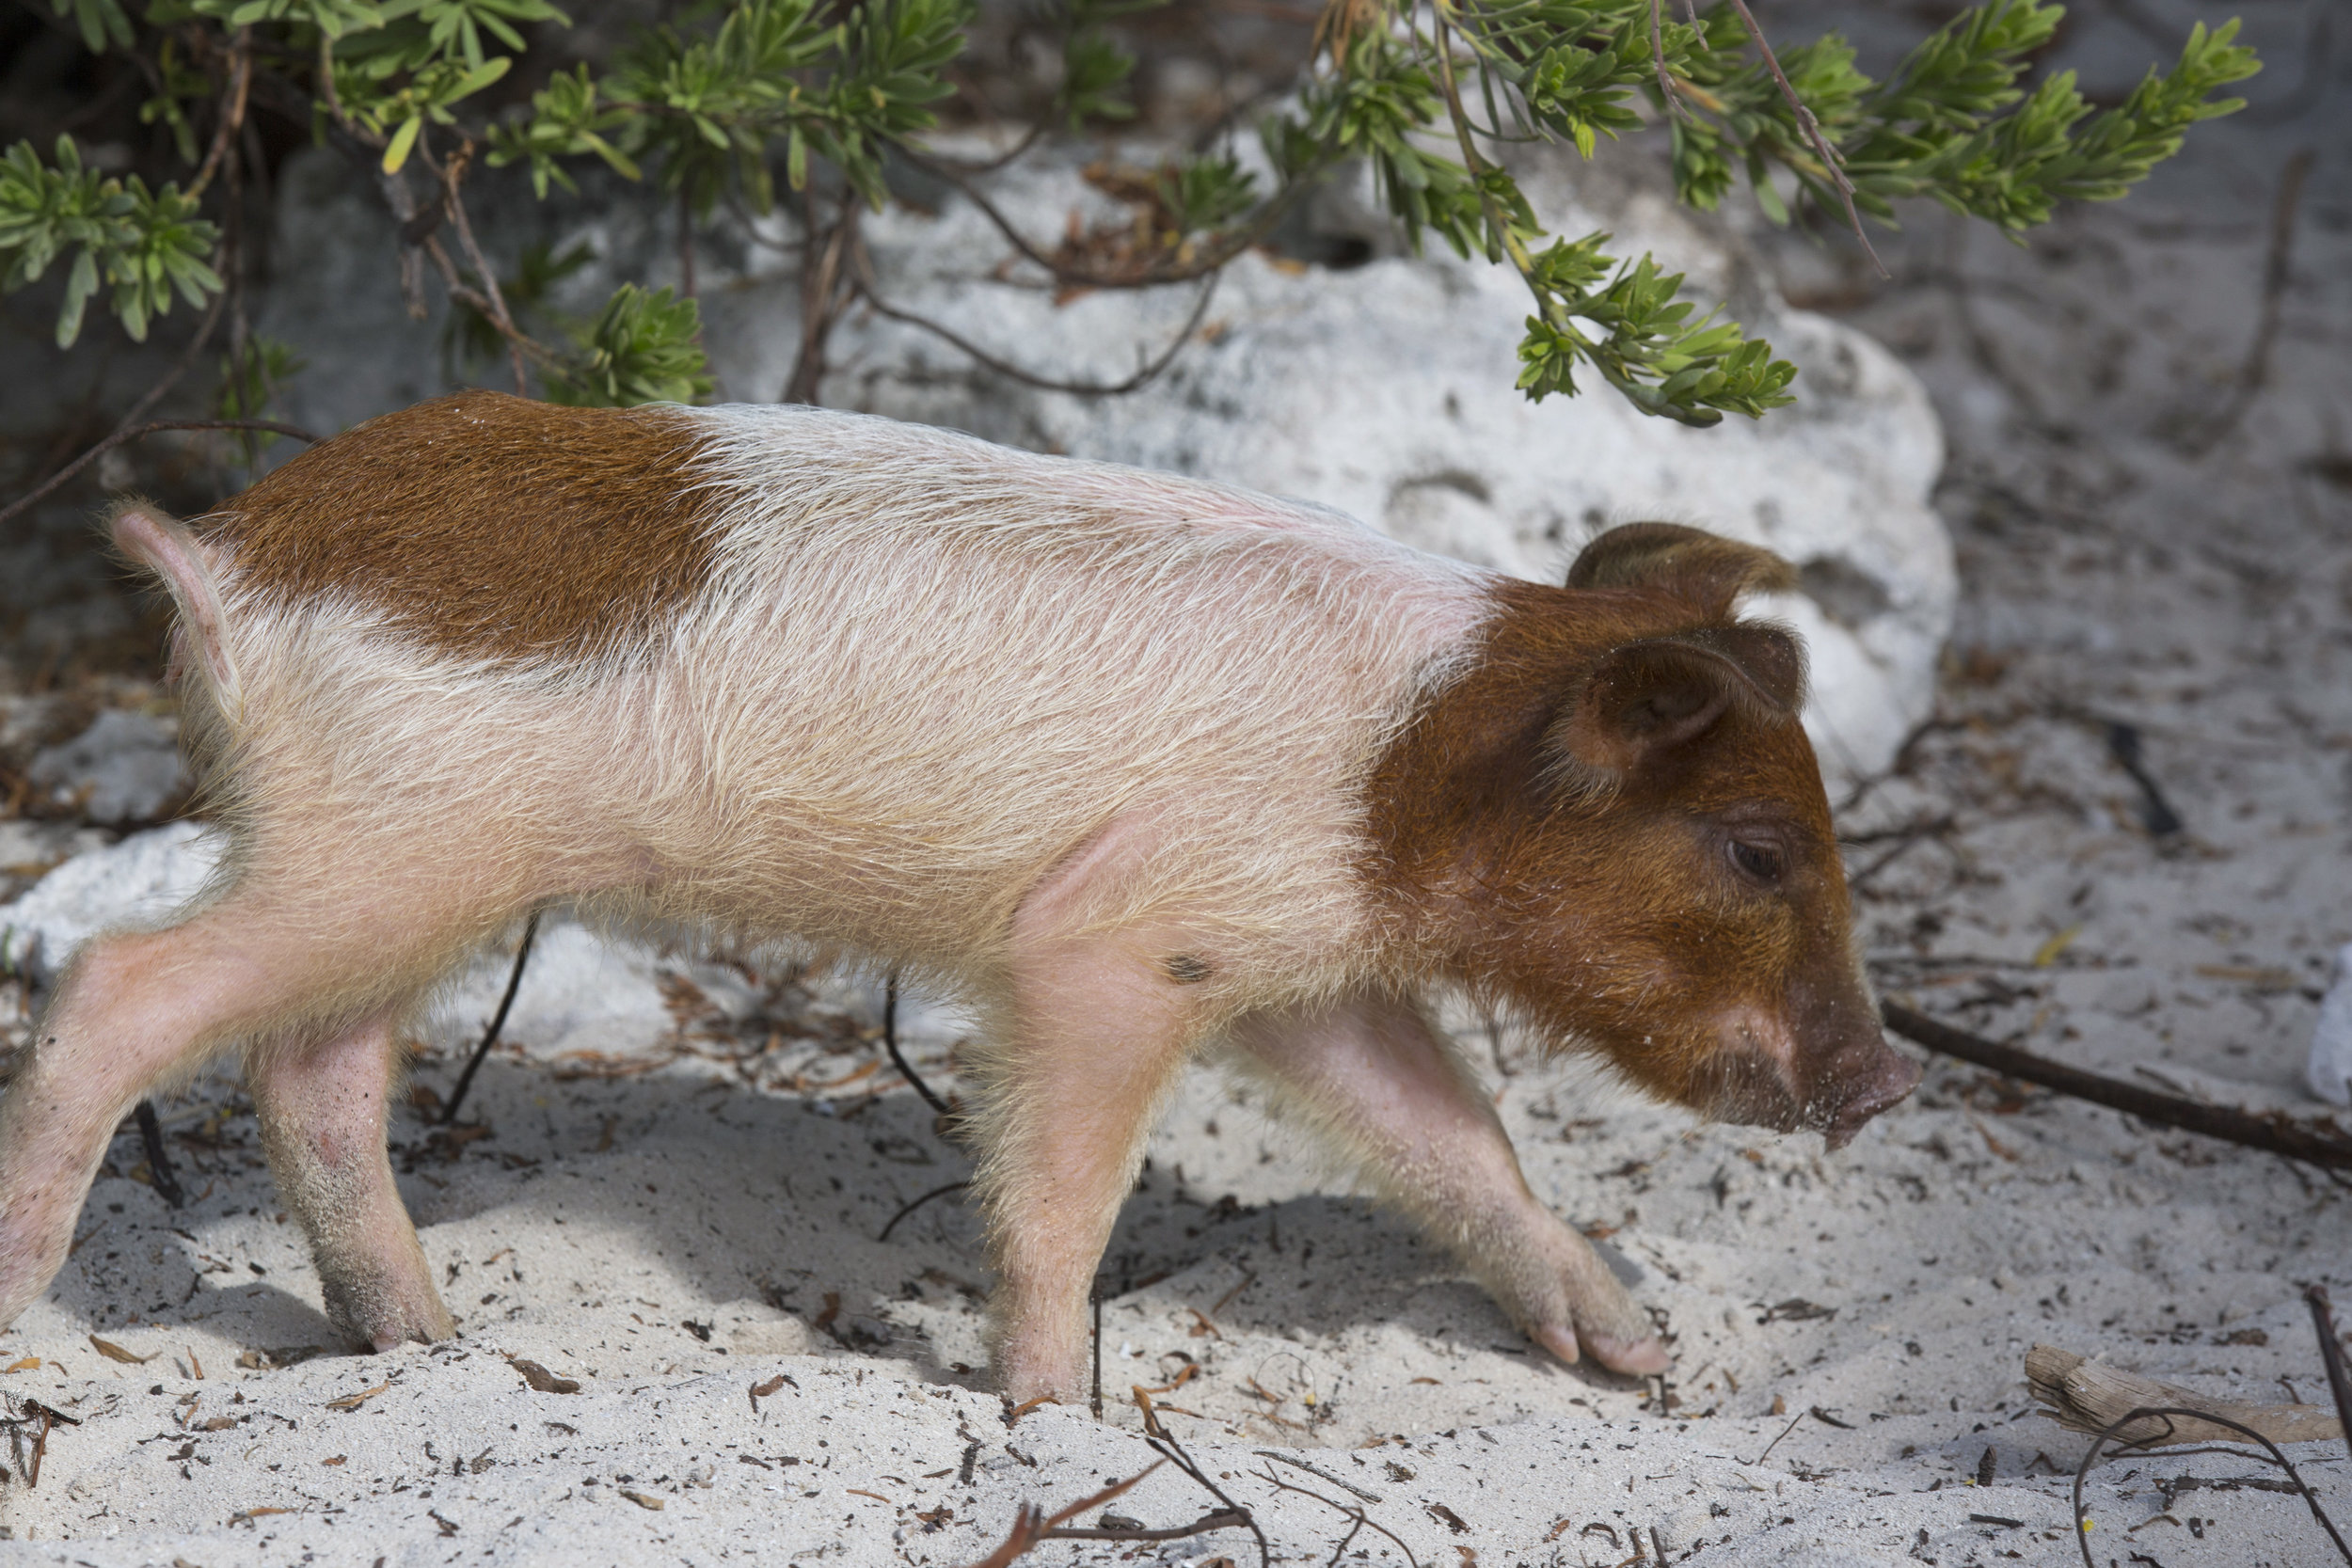 piglet-Exuma-Yacht-Sweet-Escape-swimming-pigs-exuma-yacht-sweet-escape-luxury-charter-exuma-sailor-superstitions